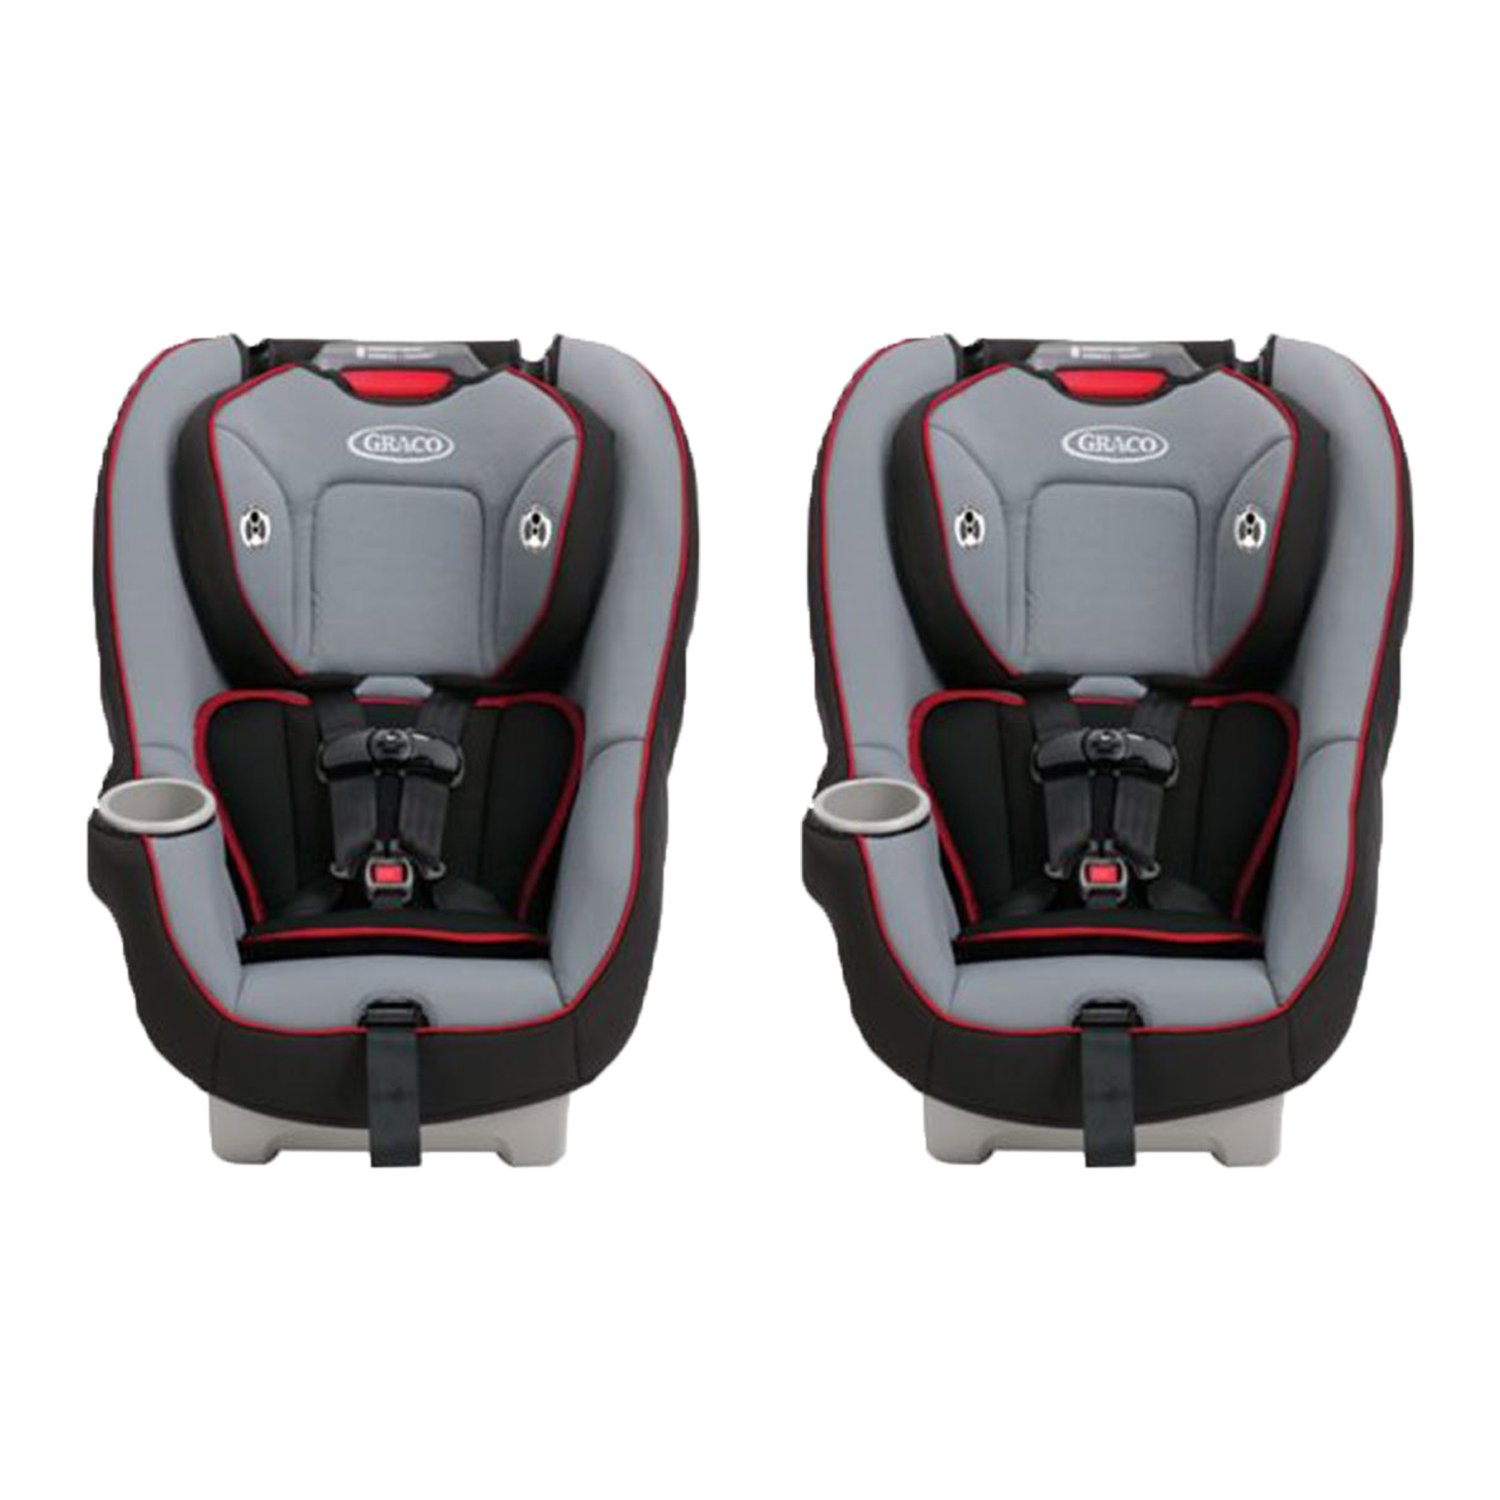 Graco 65 Convertible Baby Toddler Safety Car Seat Chair Carrier 2 Pack